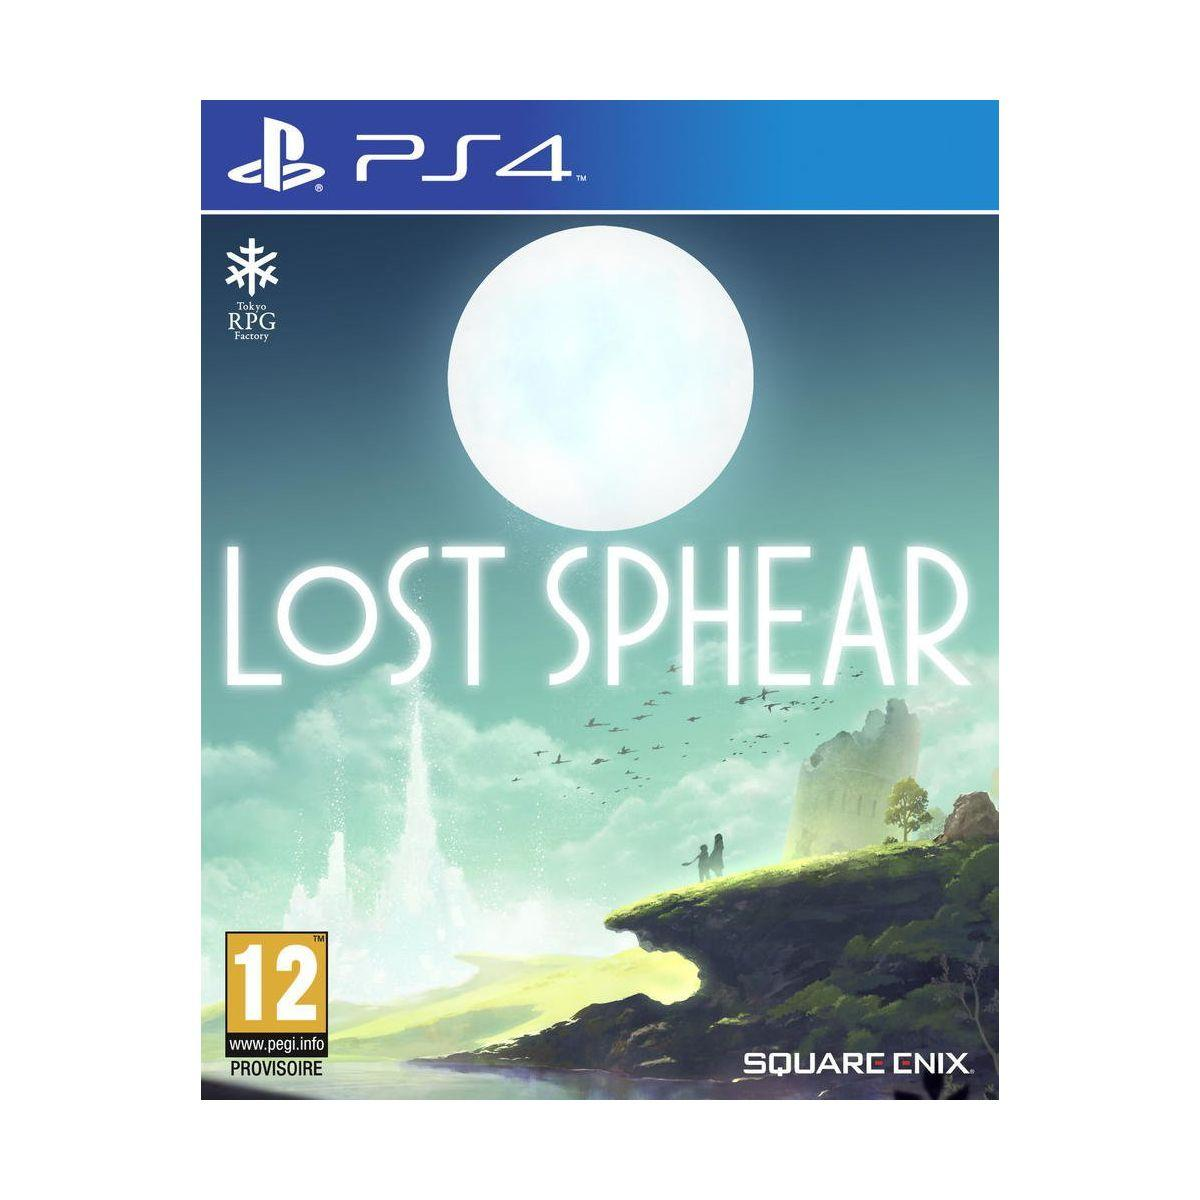 Jeu ps4 koch media lost sphear - 2% de remise imm�diate avec le code : priv2 (photo)